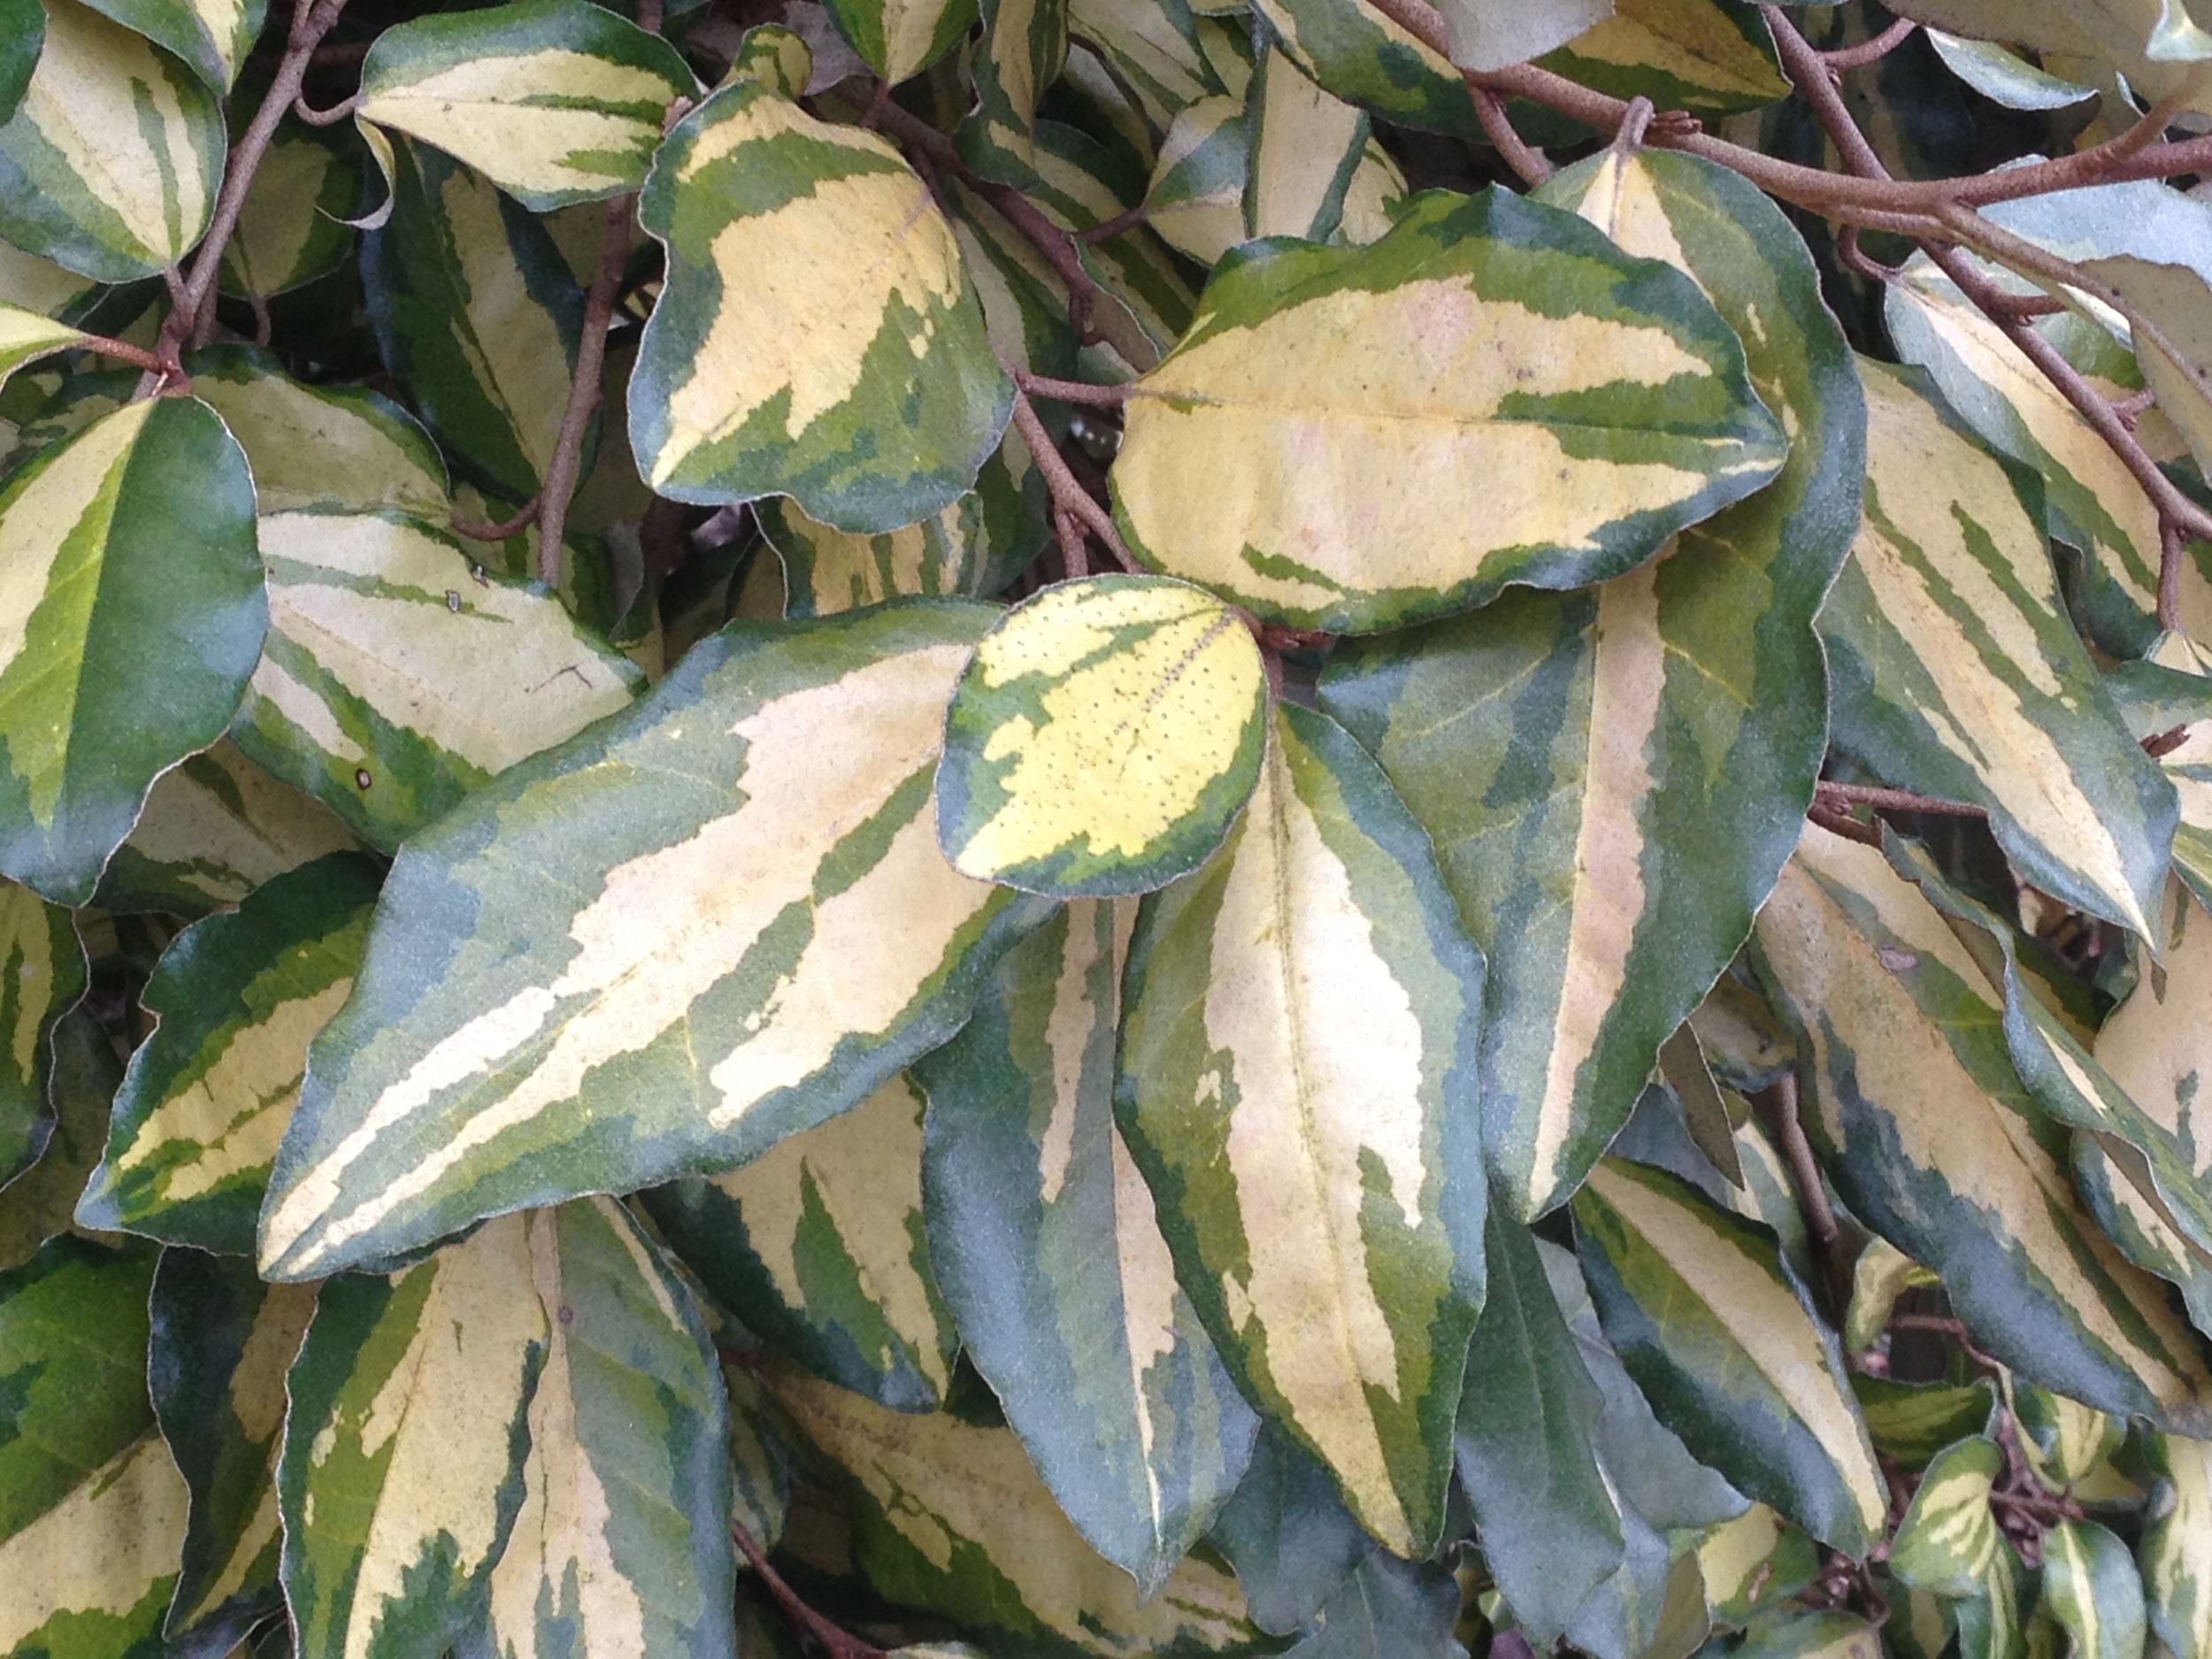 Elaeagnus ×ebbingei 'Lannou' (Gold Splash™) has a creamy yellow central blotch often approaching white on mature foliage.